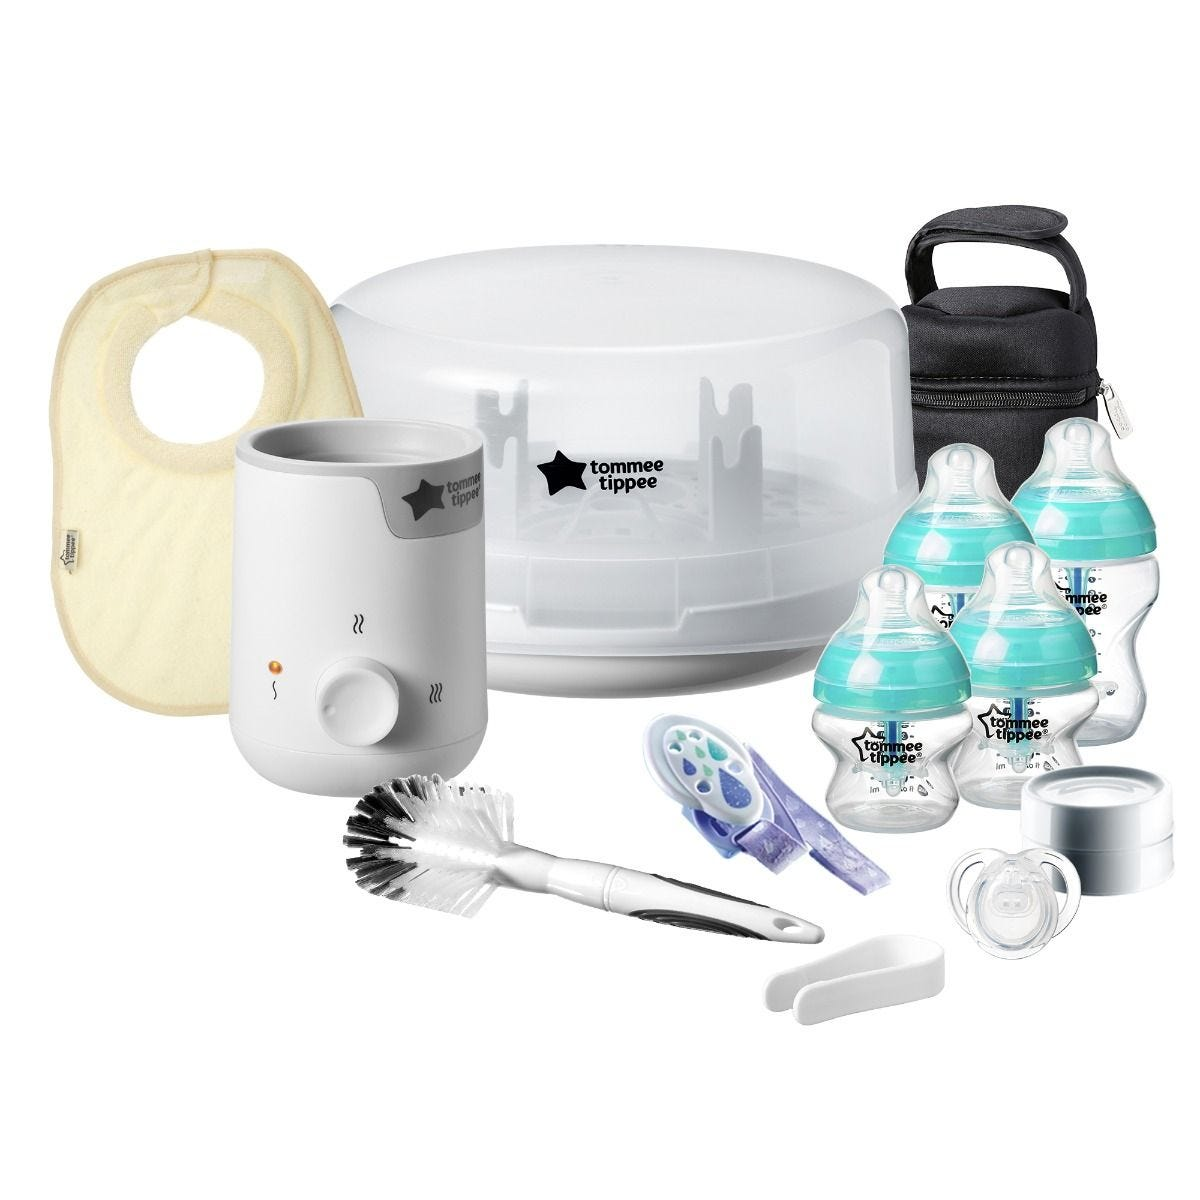 NEW Tommee Tippee Electric Steam Steriliser Set /& Bottles Brush Soother Feeding